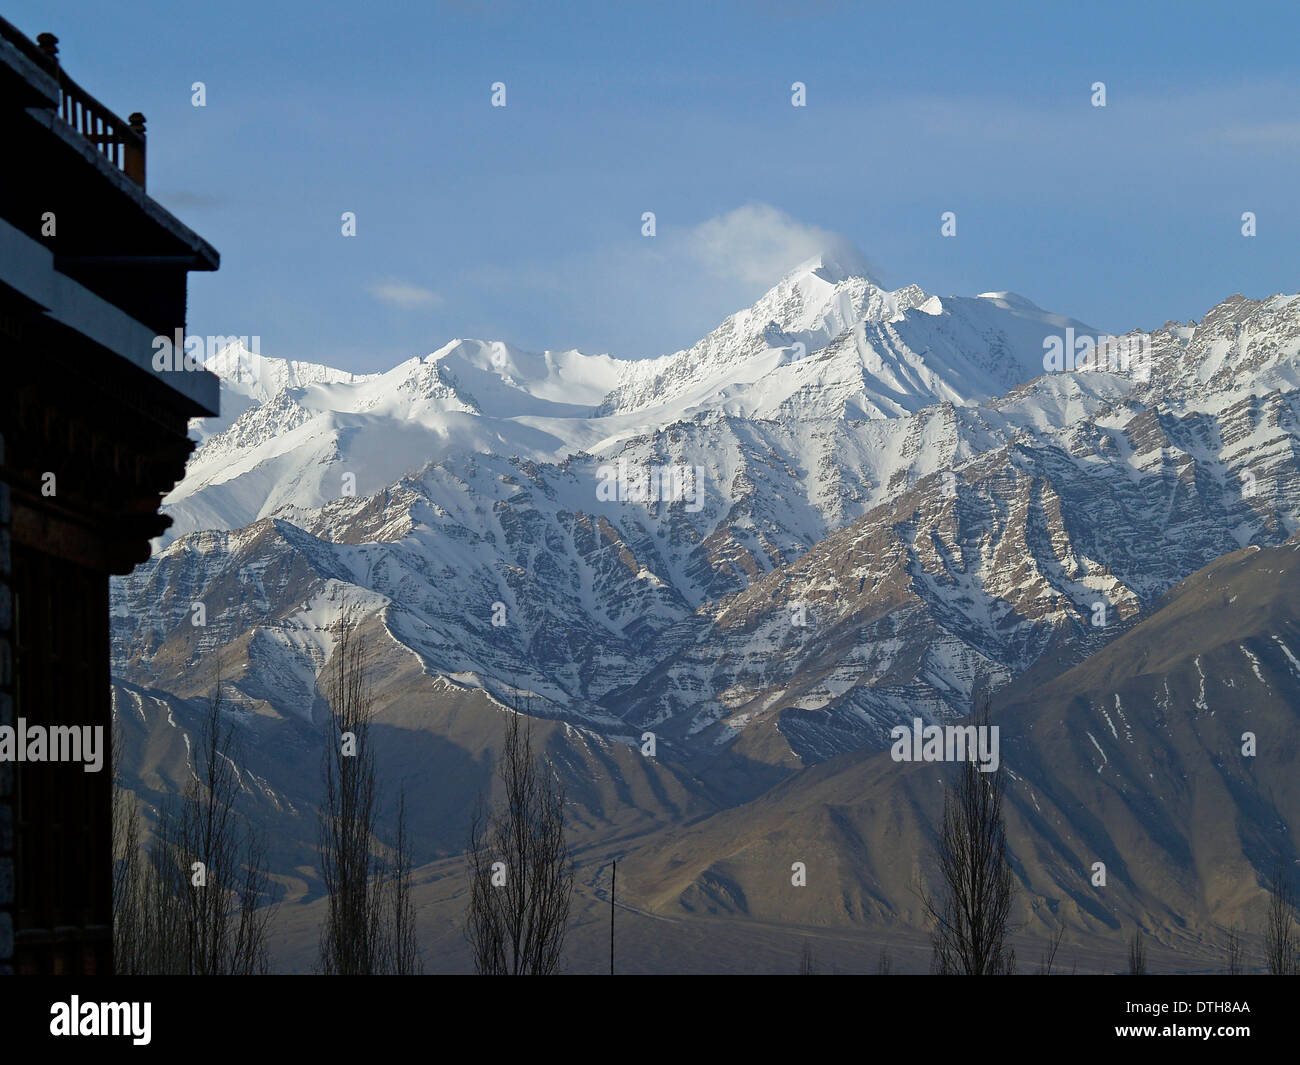 The snowcapped peaks of the Himalayan Mountains from Leh,Ladakh - Stock Image